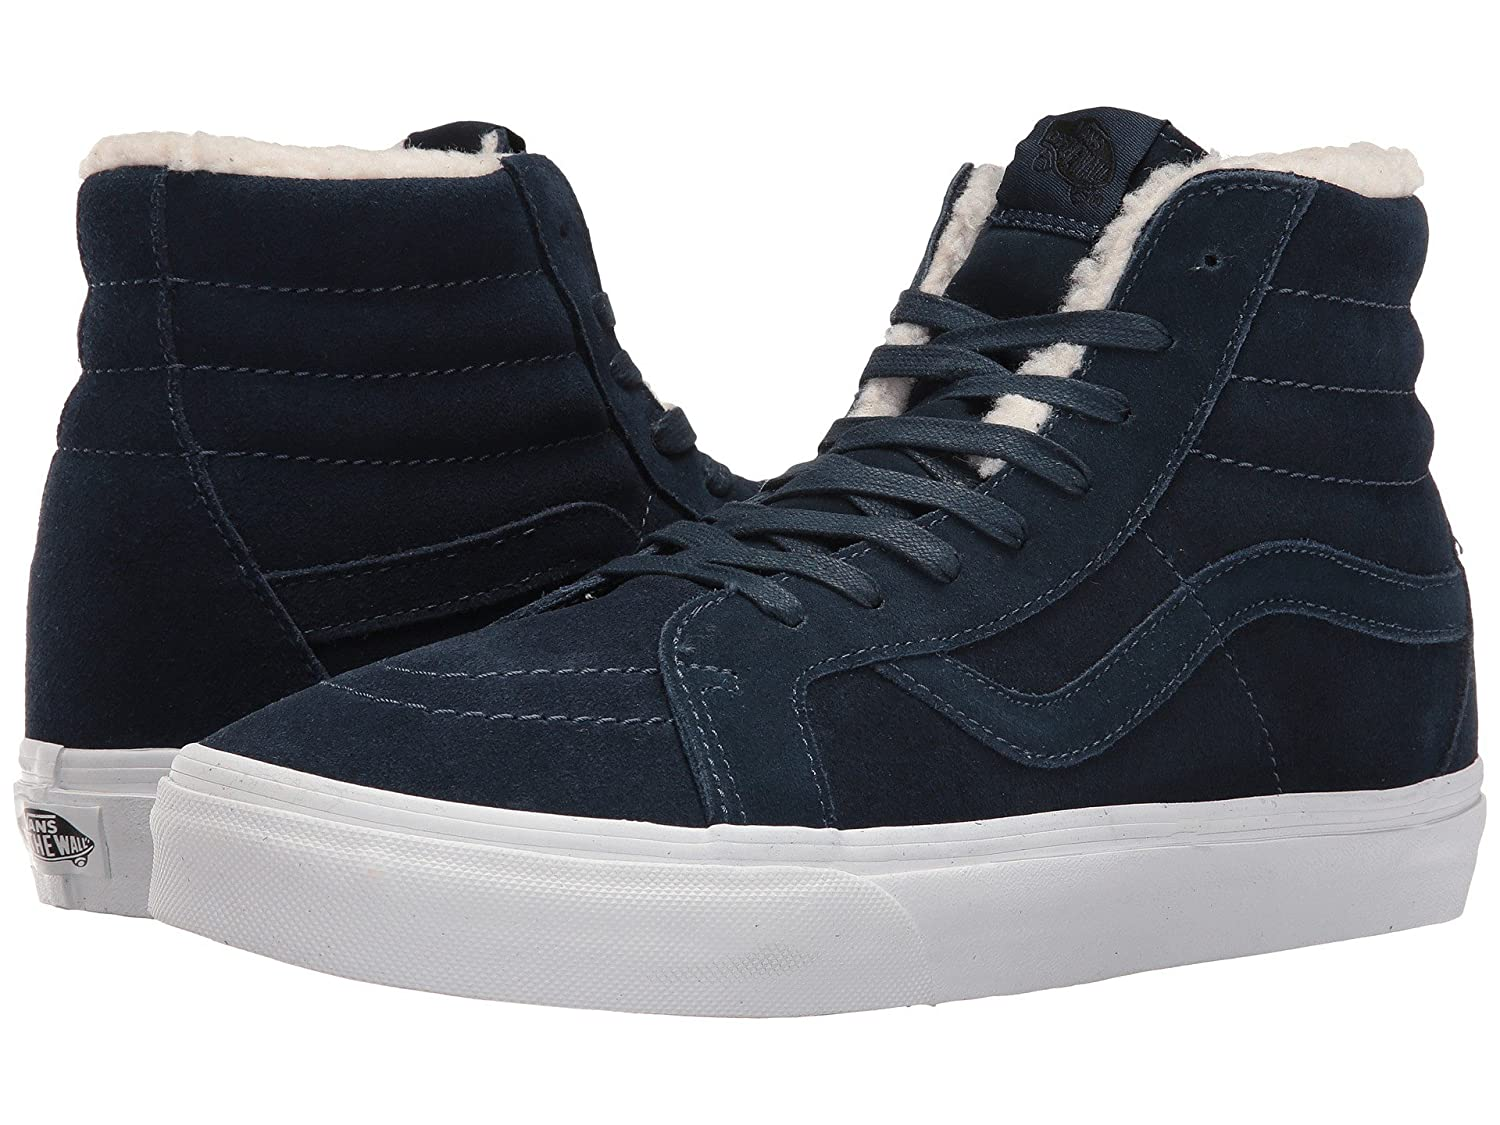 Vans Unisex Sk8-Hi Slim Women's Skate Shoe B01NBGWIPZ 8 38.5 M EU / 8 B01NBGWIPZ B(M) US Women / 6.5 D(M) US Men|(Suede Fleece) Dress Blues/True White cb40ed